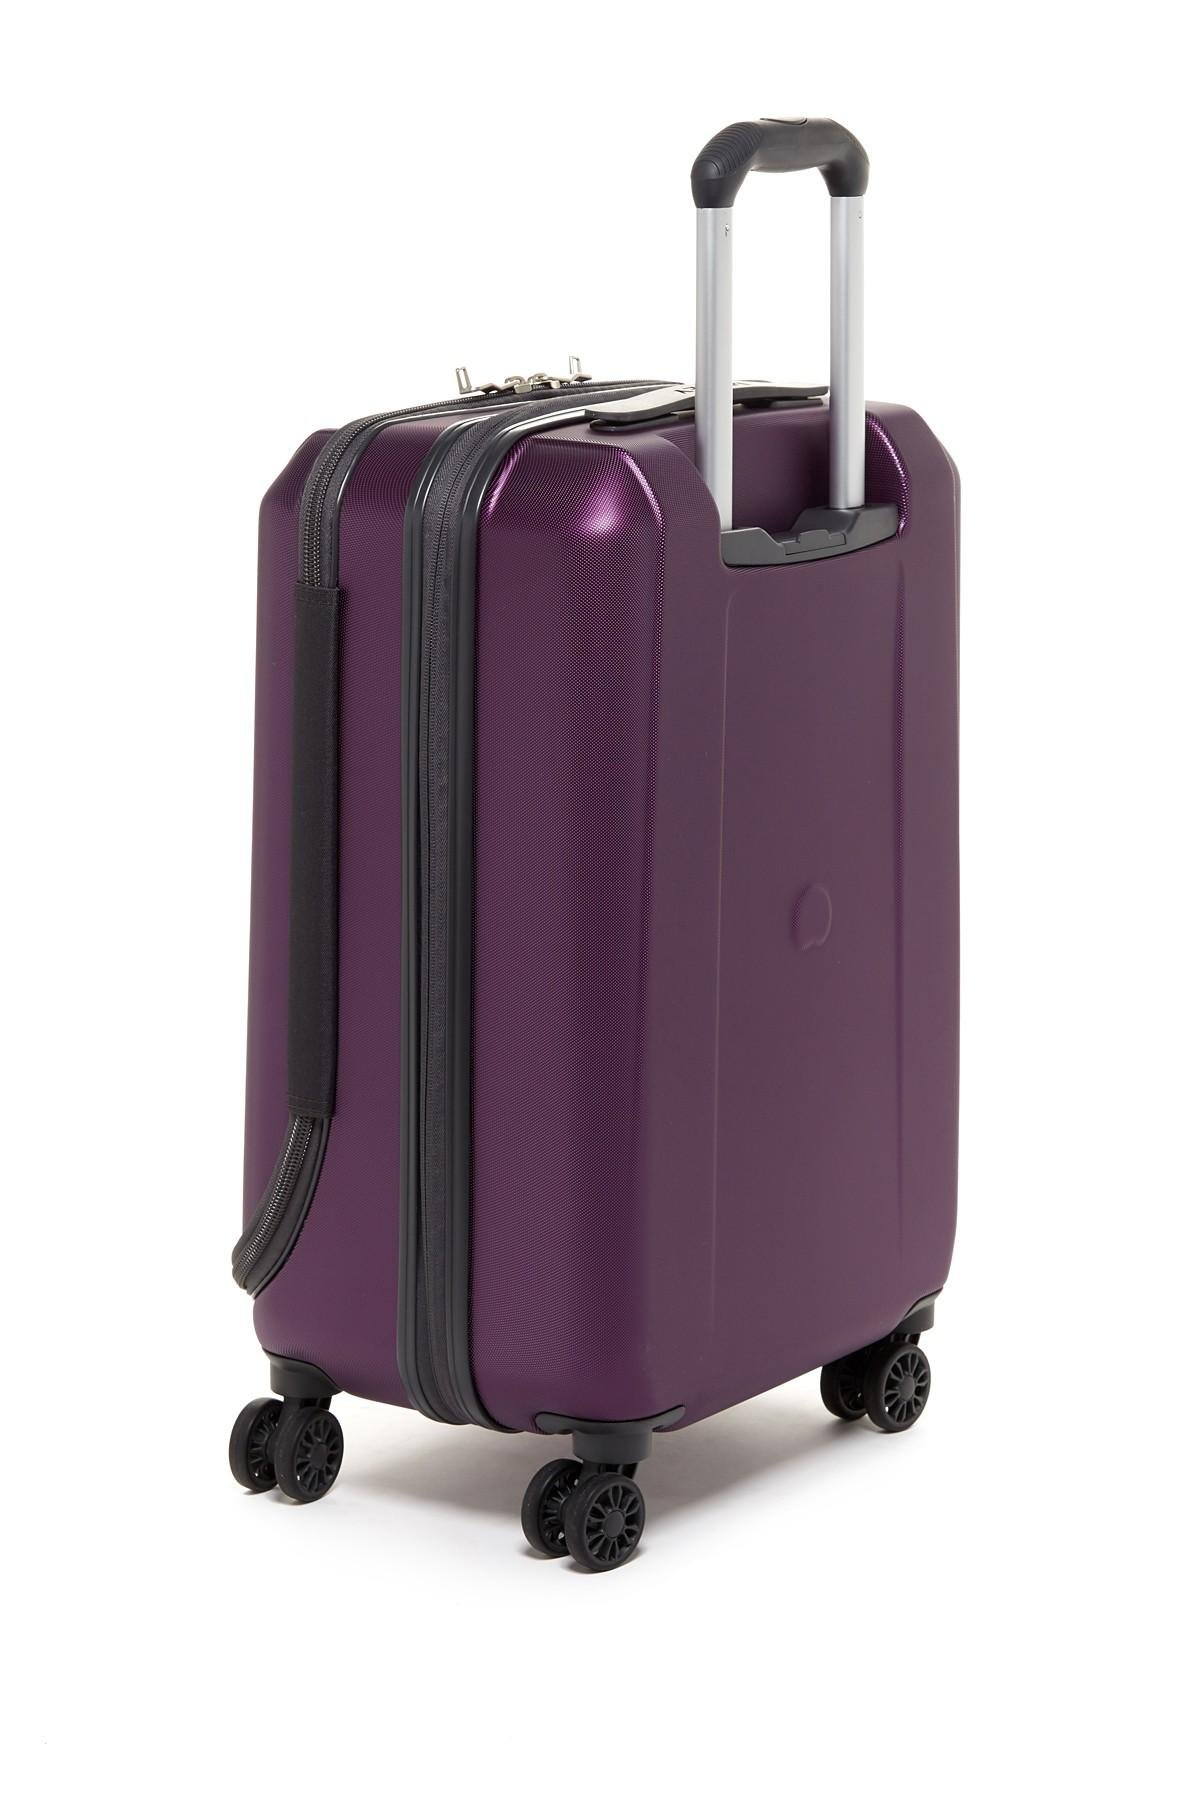 Lyst Delsey 21 Quot Expandable Spinner Suiter Trolley Case